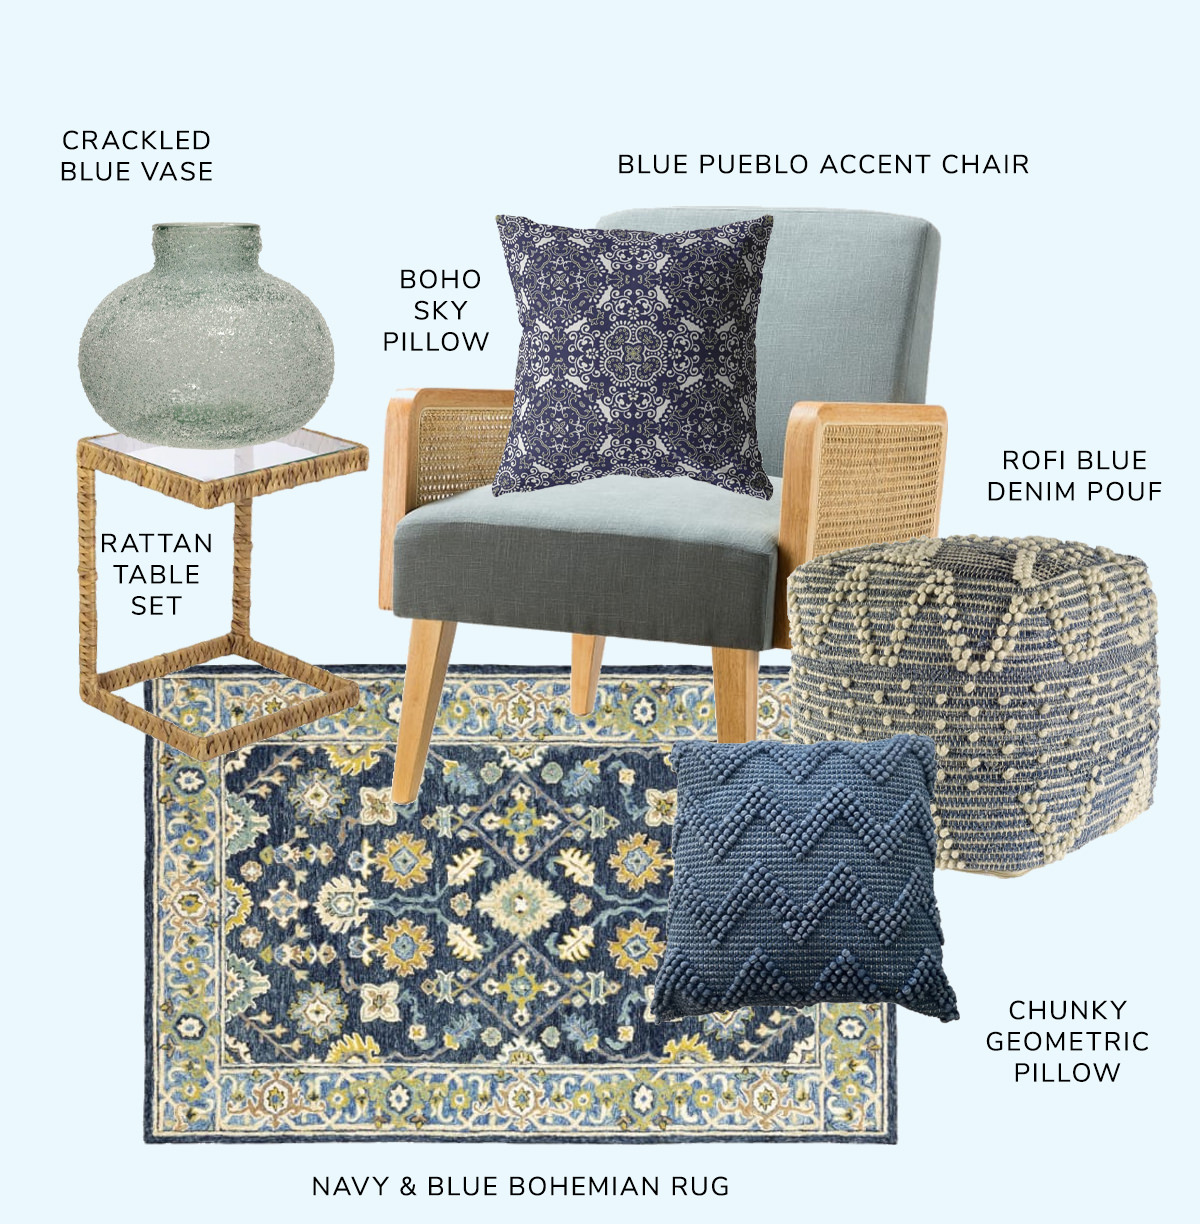 Pueblo Accent Chair, Cormac Water Hyacinth Set of 2 C Tables,Rofi Blue Denim and Ivory Cotton Stitched Square Pouf, Navy and Blue Bohemian Rug, Boho Sky Pillow, Hadley Wool Throw Pillow, Crackled Blue Vase   SHOP NOW